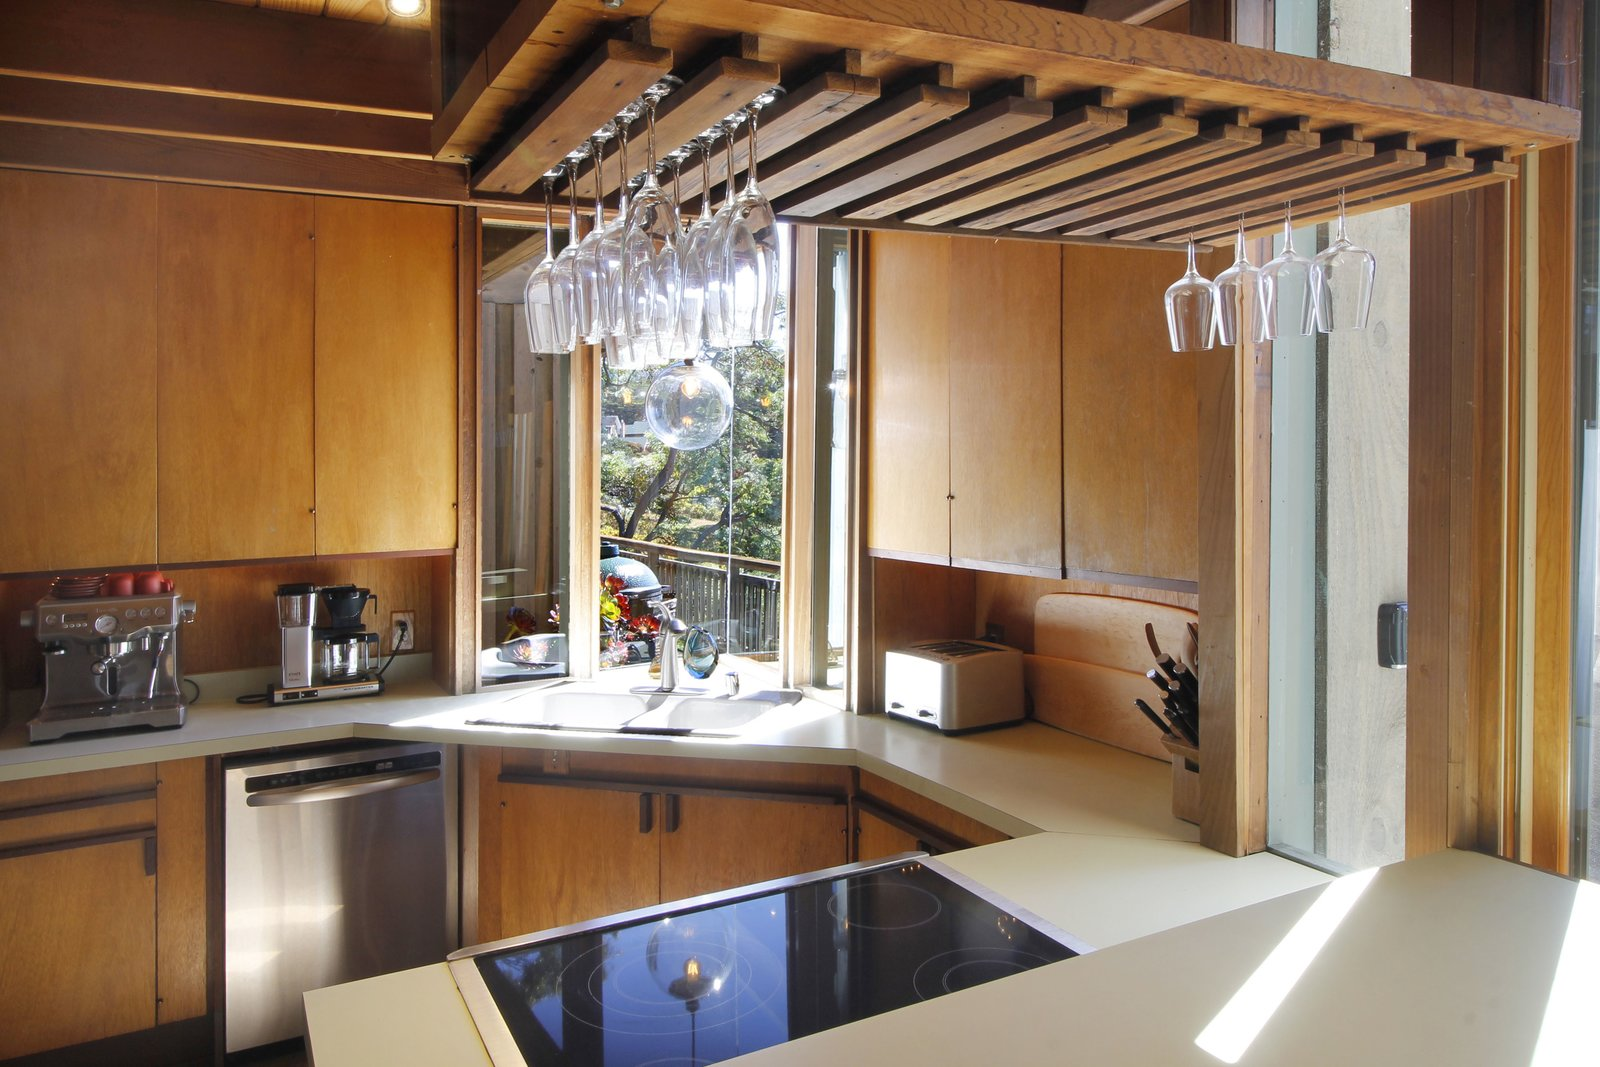 Kitchen, Wood Cabinet, Cooktops, Recessed Lighting, Dishwasher, Beverage Center, Wood Backsplashe, and Drop In Sink  Photo 5 of 11 in A Perfectly Preserved Midcentury Pad in Northern California Asks $1.975M